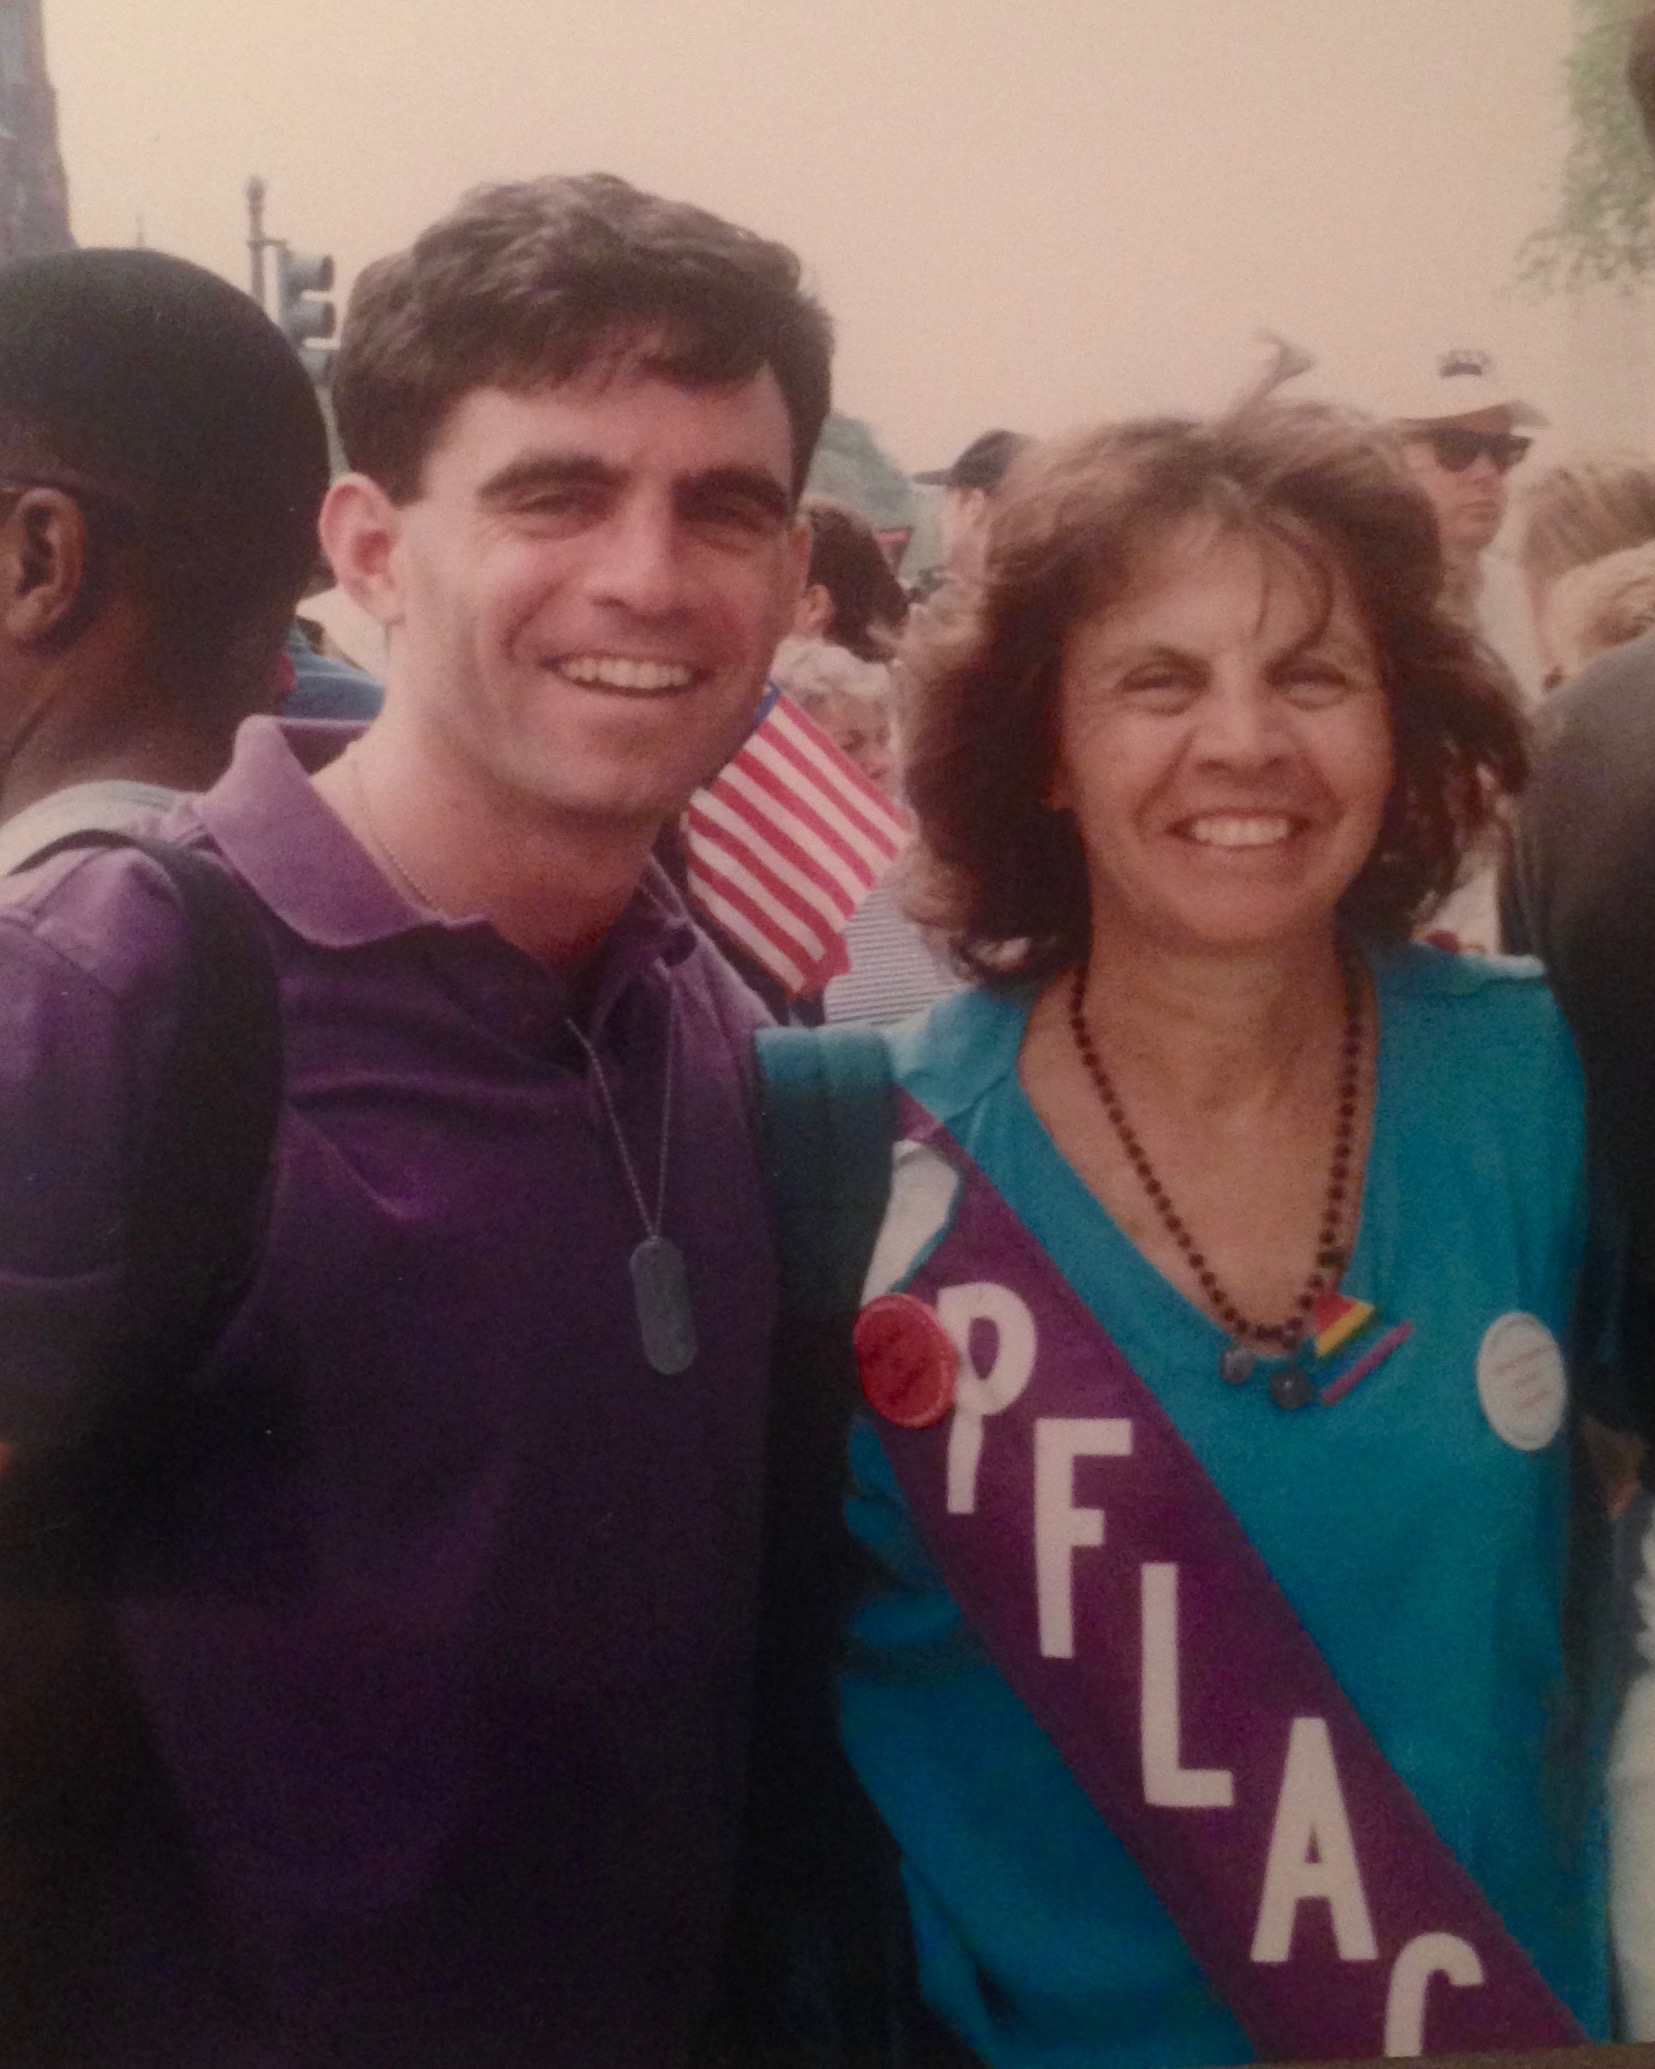 Eric Marcus with his mother, Cecilia Marcus, at the 1993 March on Washington for Lesbian, Gay, and Bi Equal Rights and Liberation. Courtesy Eric Marcus